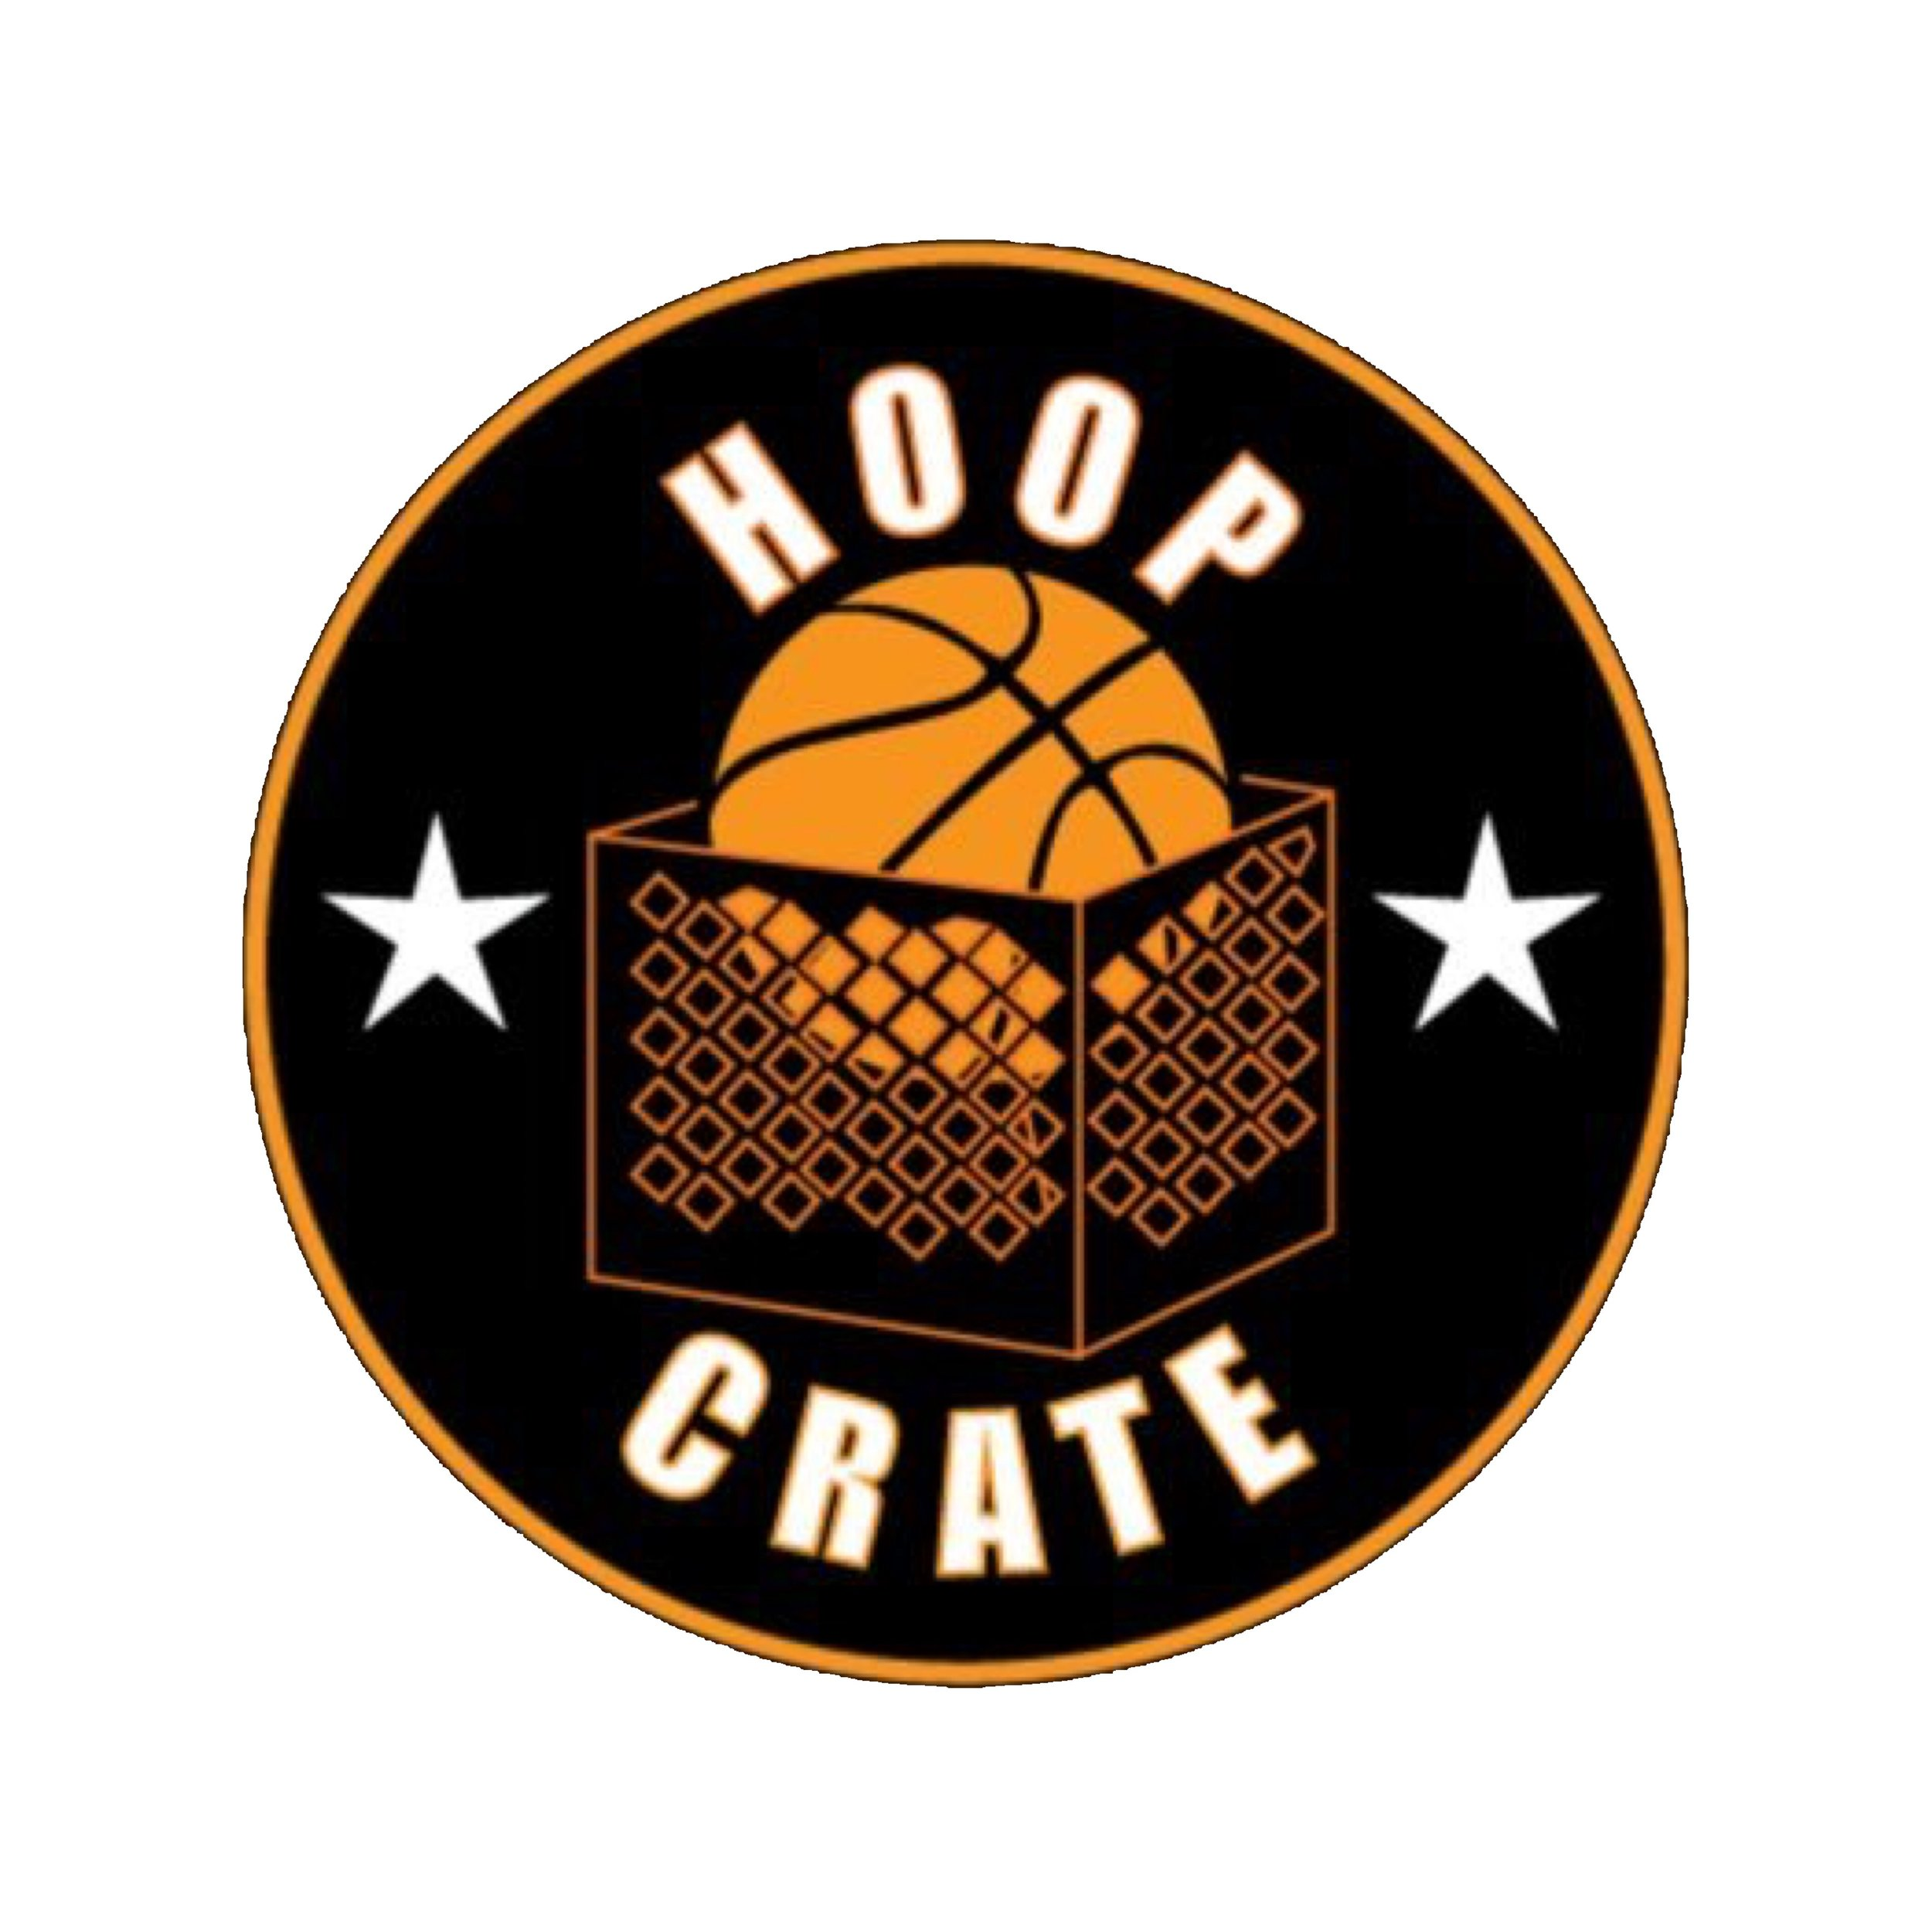 Copy of Hoop Crate